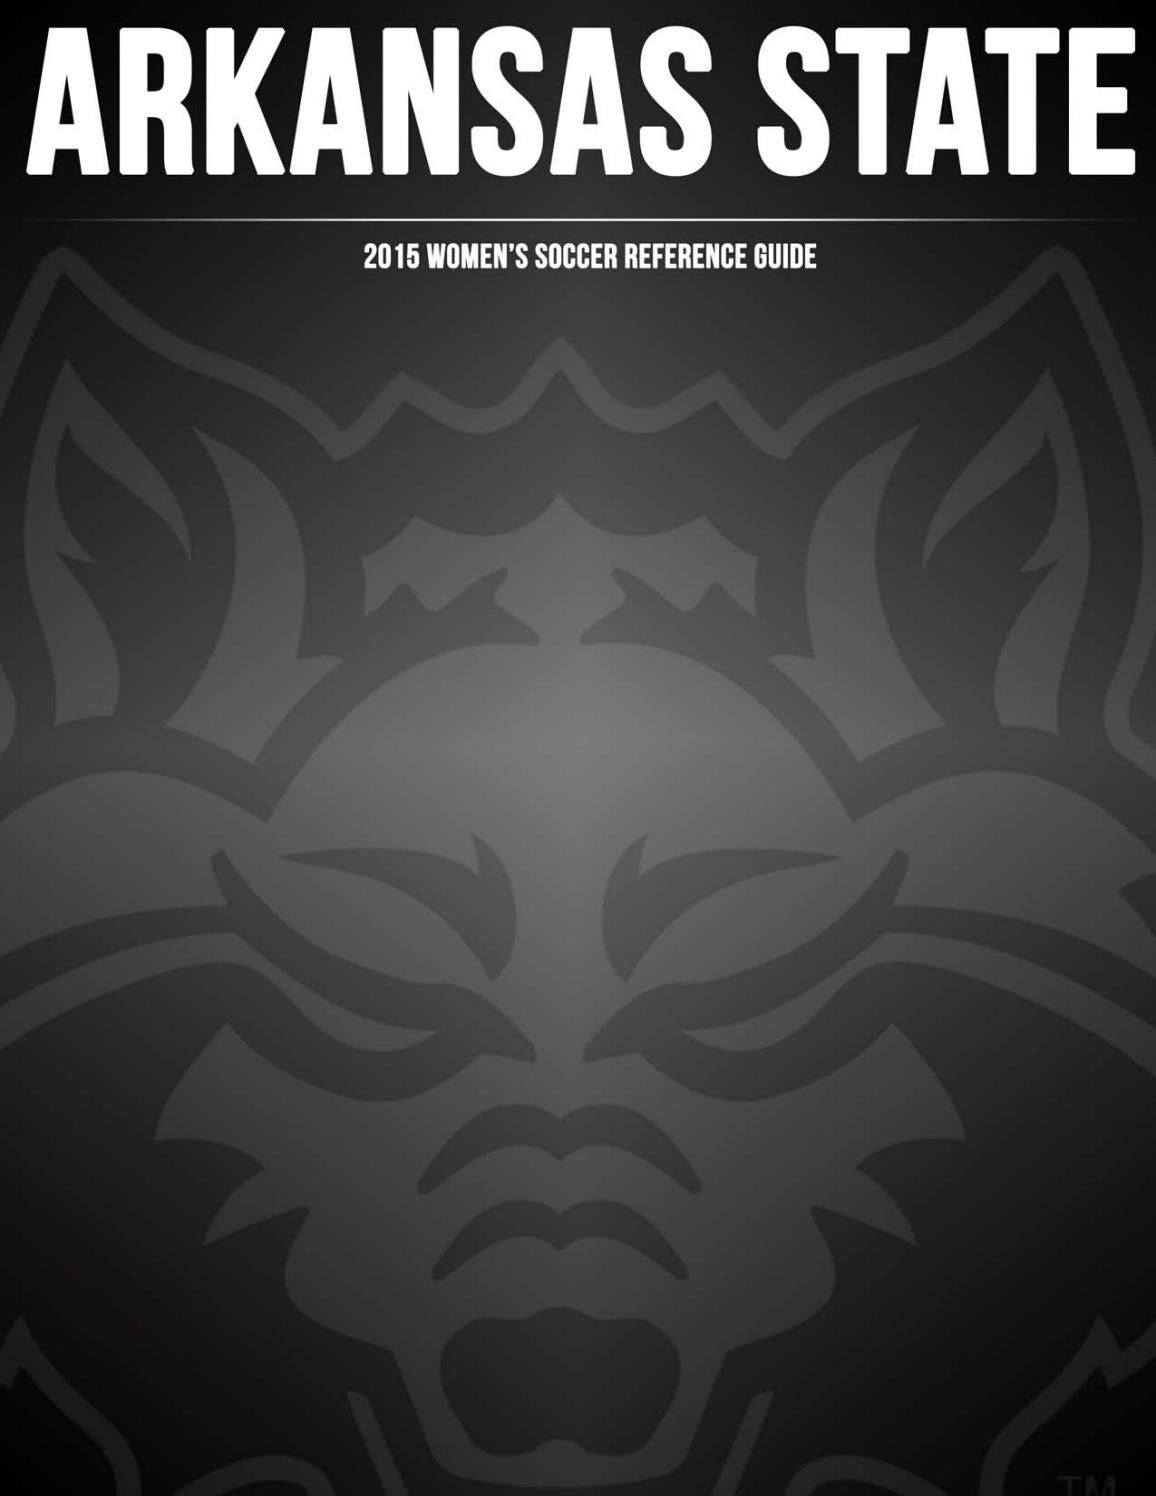 Us Area Codes In Numerical Order%0A      Arkansas State Soccer Reference Guide by Arkansas State Athletics   issuu